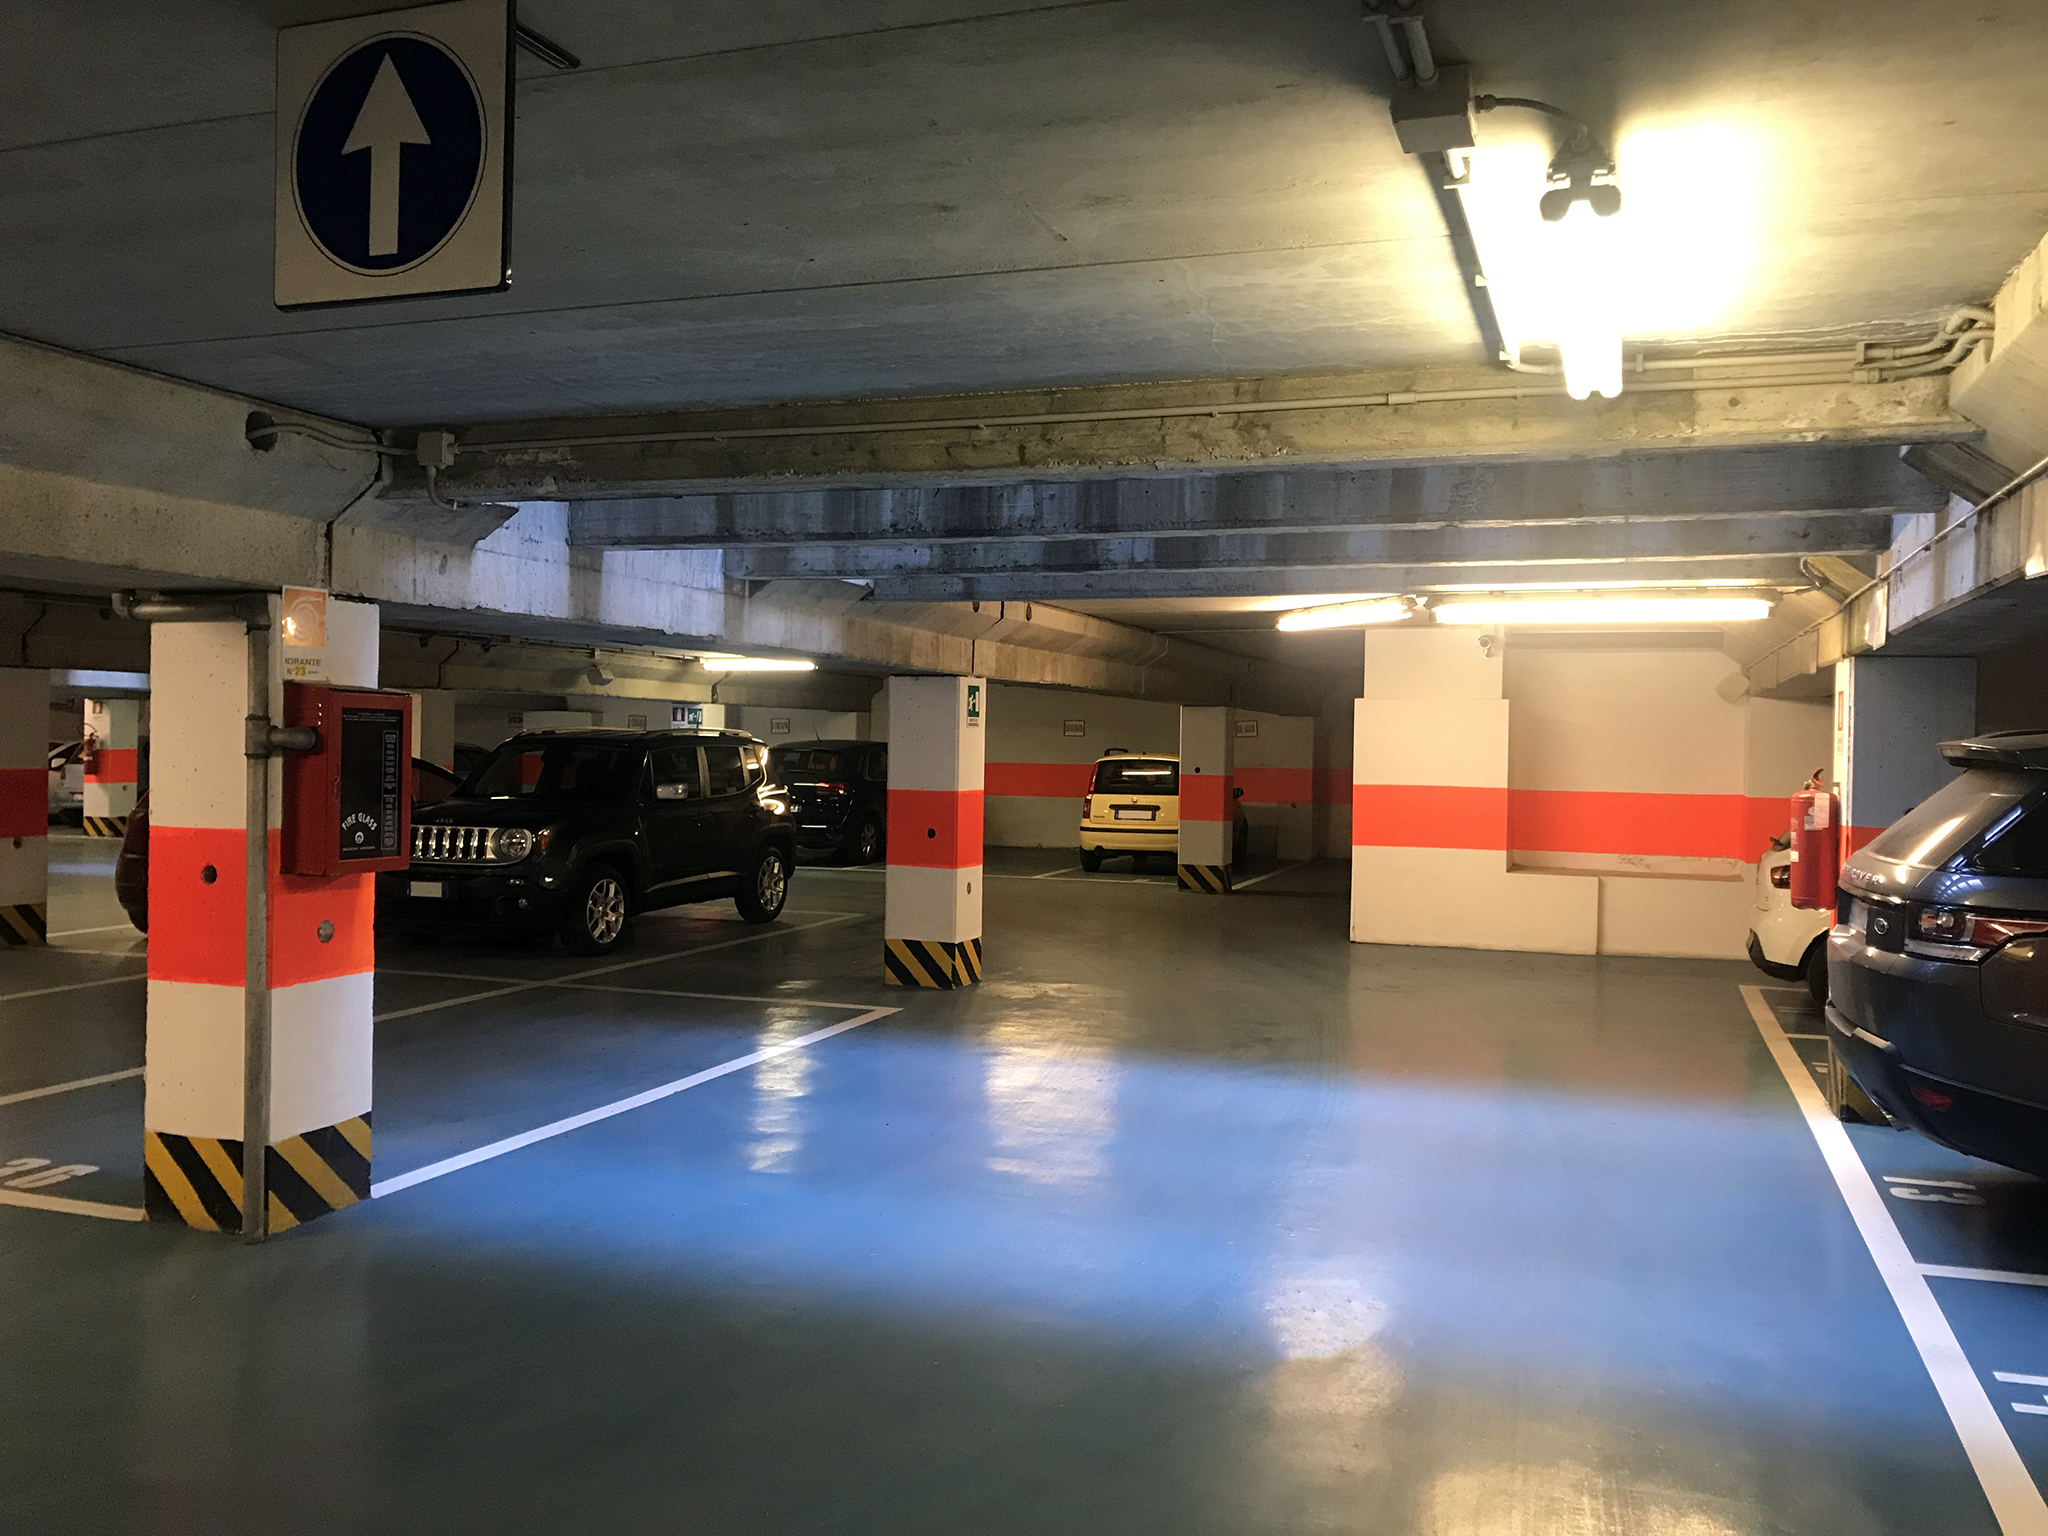 Indoor parking lots to rent in the garage at the first basement floor.